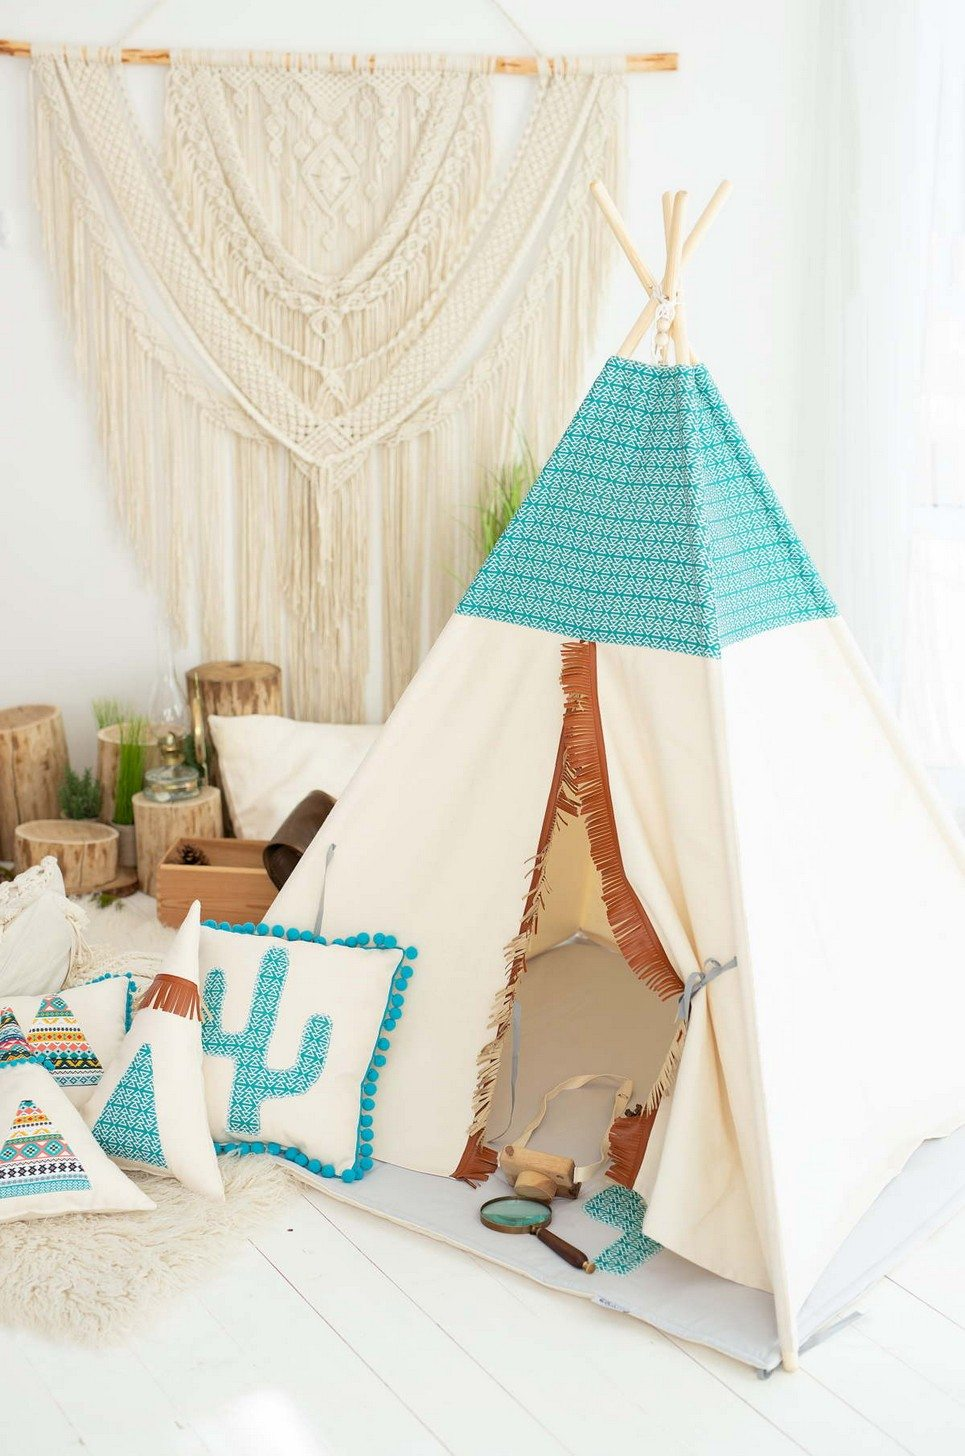 Mexican Children's Play Teepee